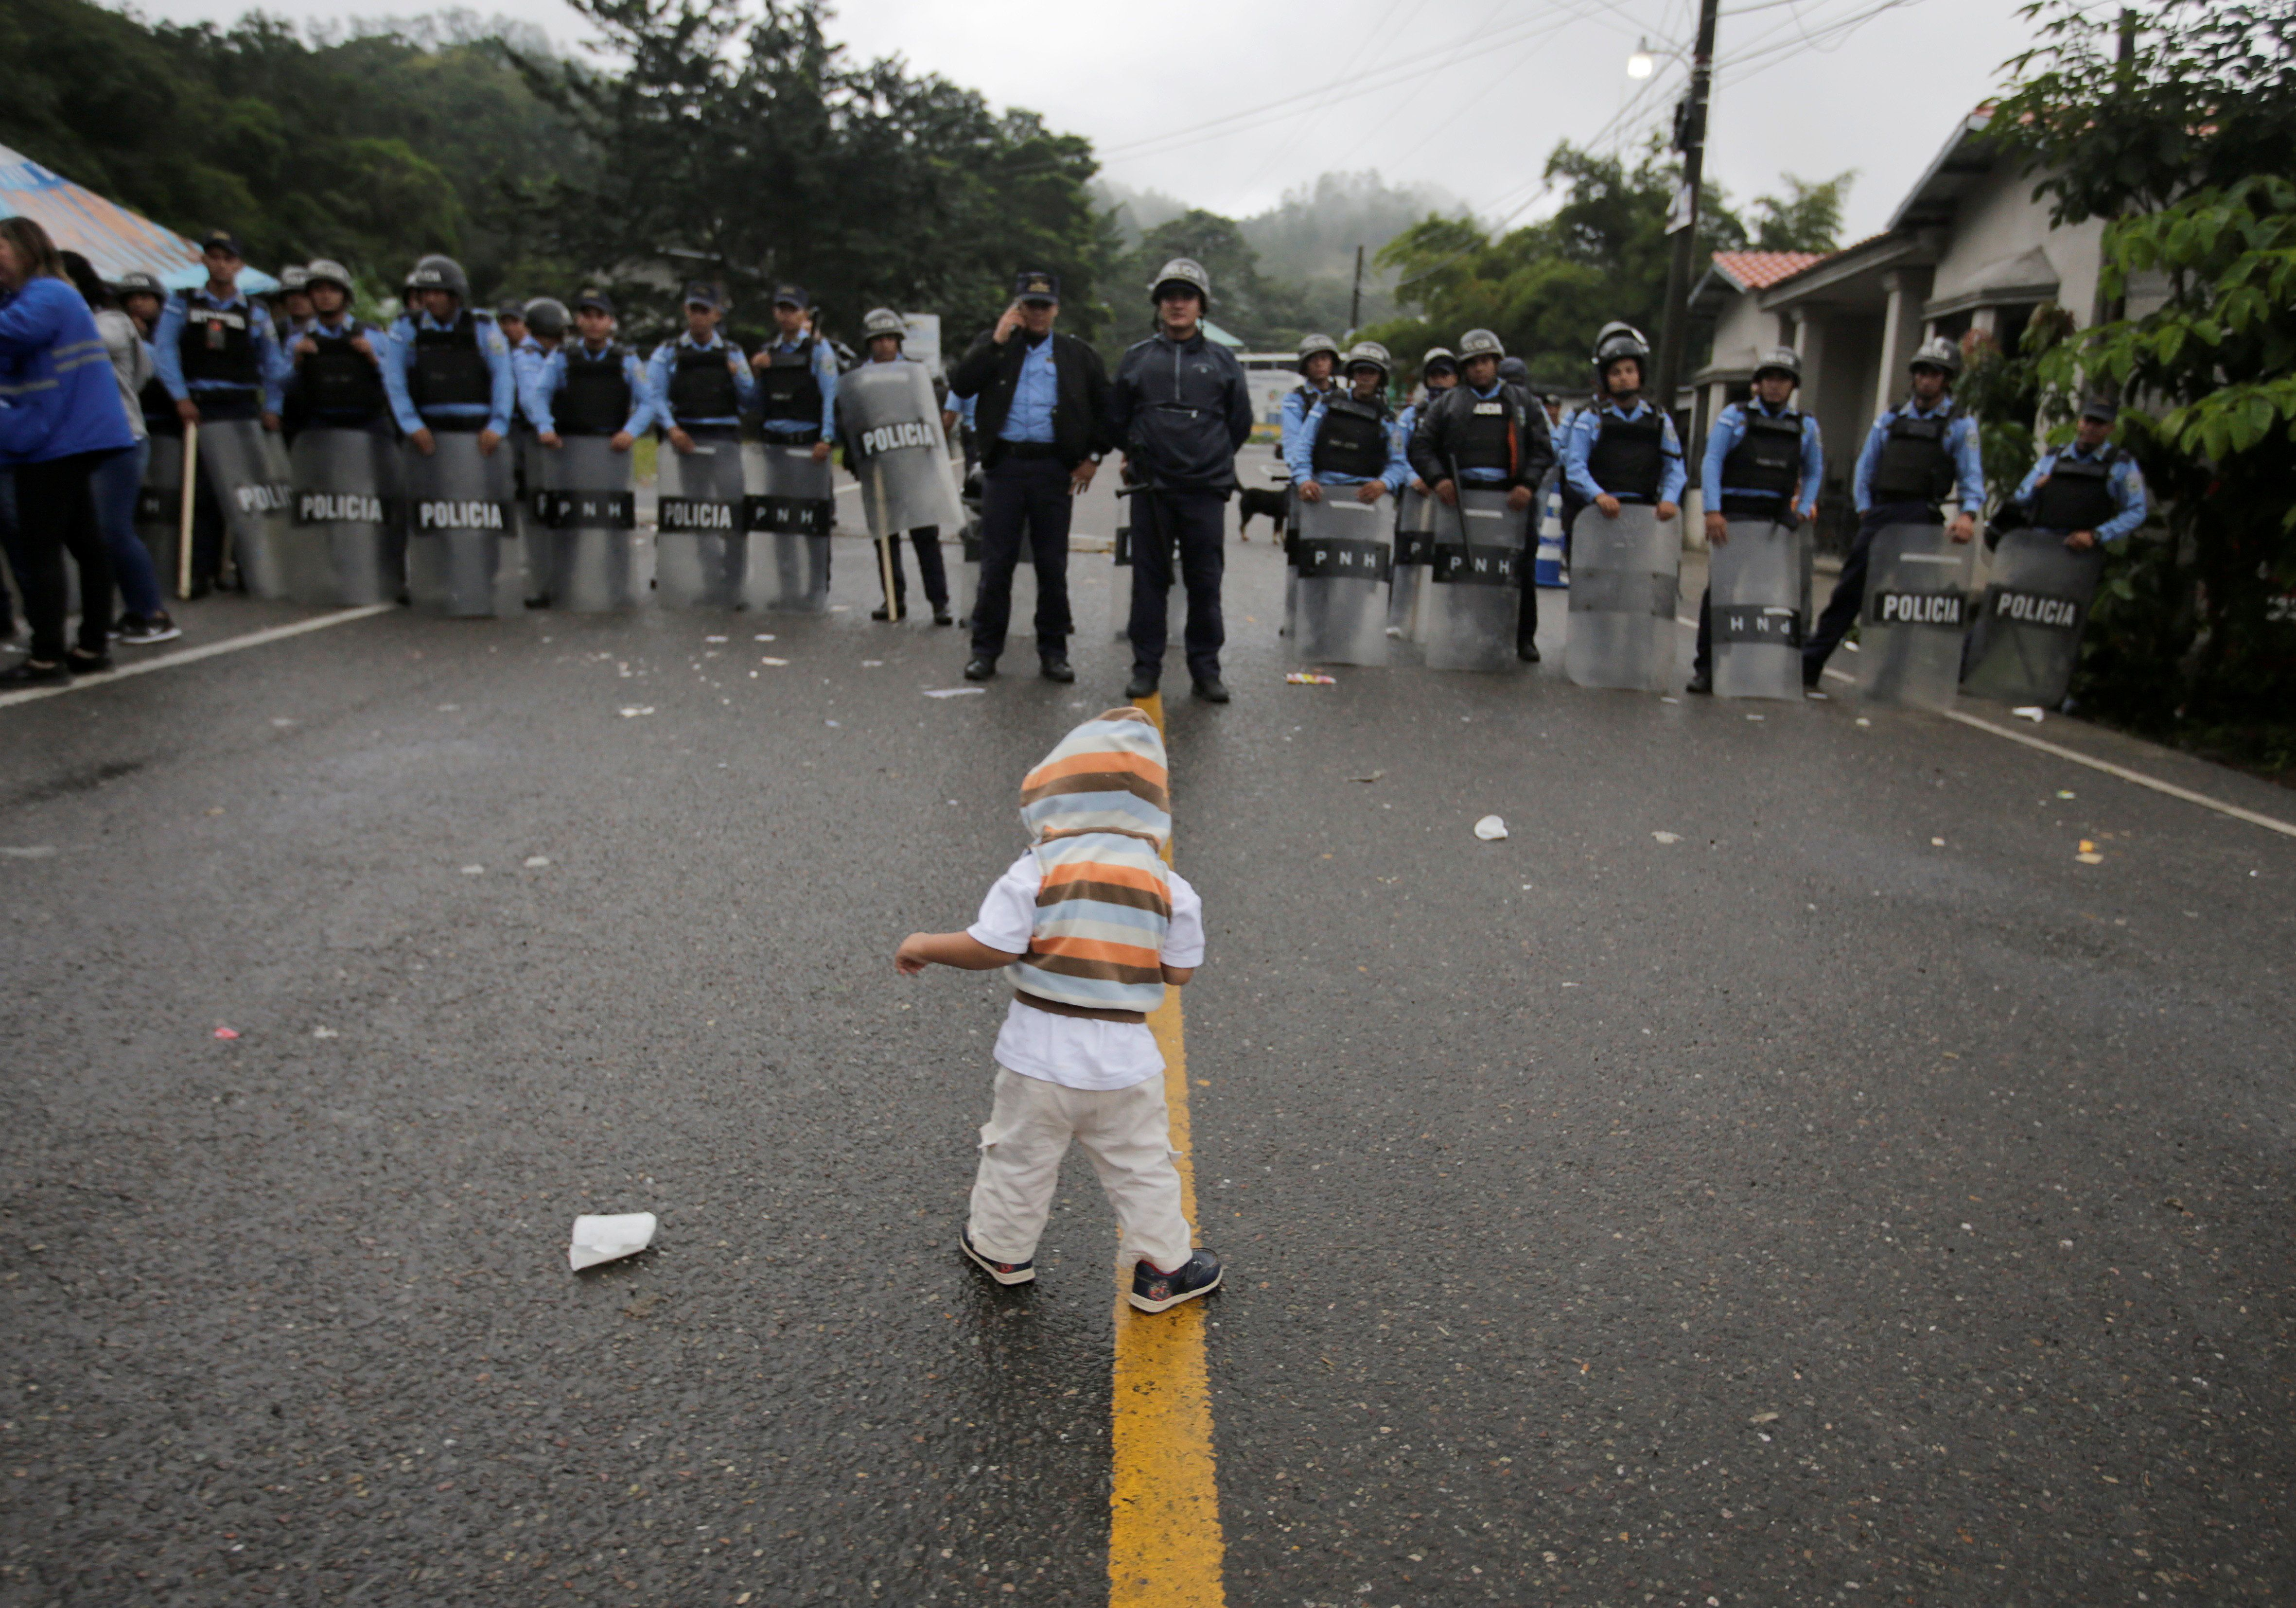 REFILE - CORRECTING DESCRIPTION OF SCENE A Honduran child, traveling with a caravan of Honduran migrants trying to reach the U.S., stands in front of Honduran police officers blocking the street, in Agua Caliente, Honduras October 17, 2018. REUTERS/Jorge Cabrera